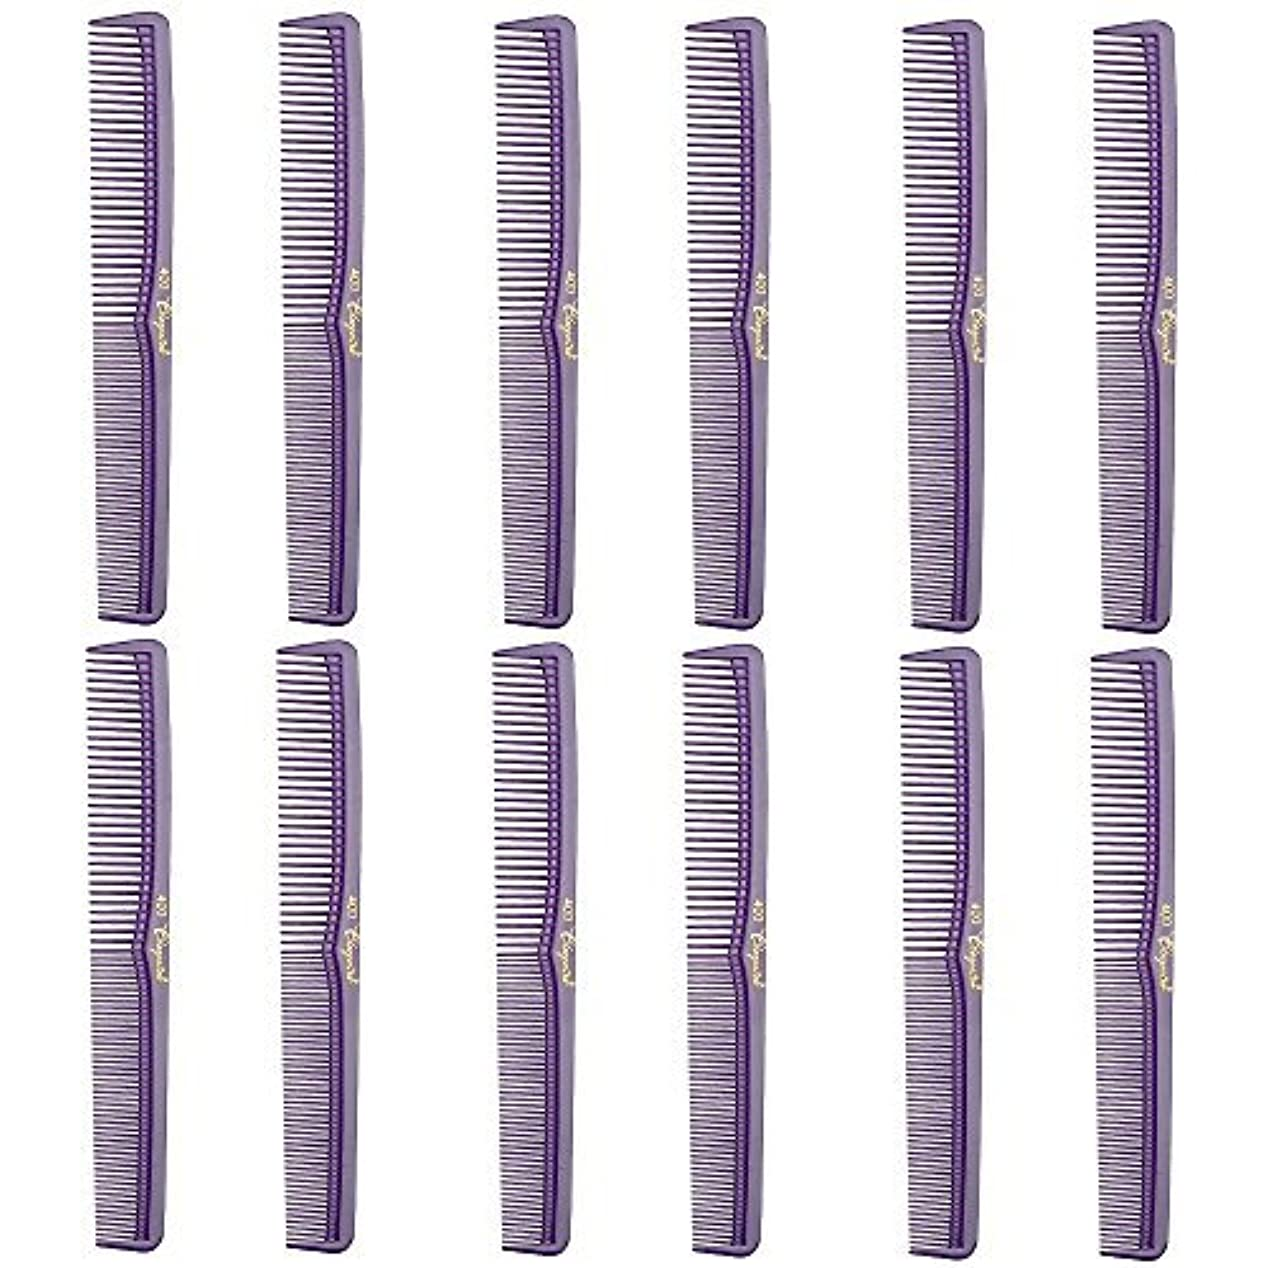 ファイアルゴール撃退するBarber Beauty Hair Cleopatra 400 All Purpose Comb (12 Pack) 12 x SB-C400-PURPLE [並行輸入品]